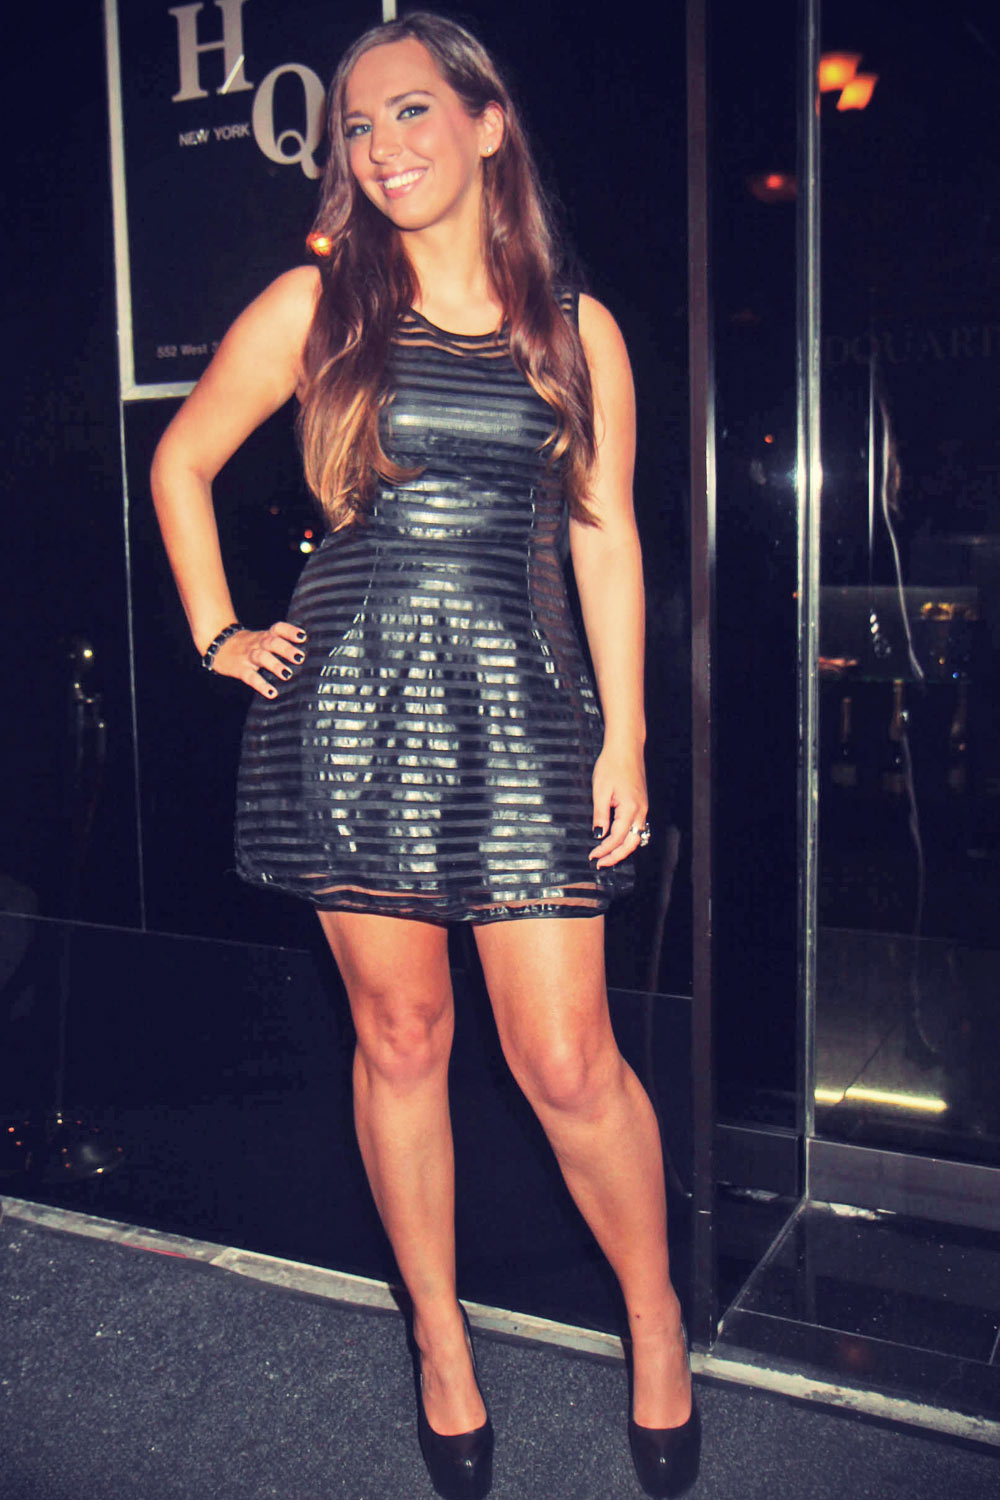 Sydney Leathers appears at HQ strip club